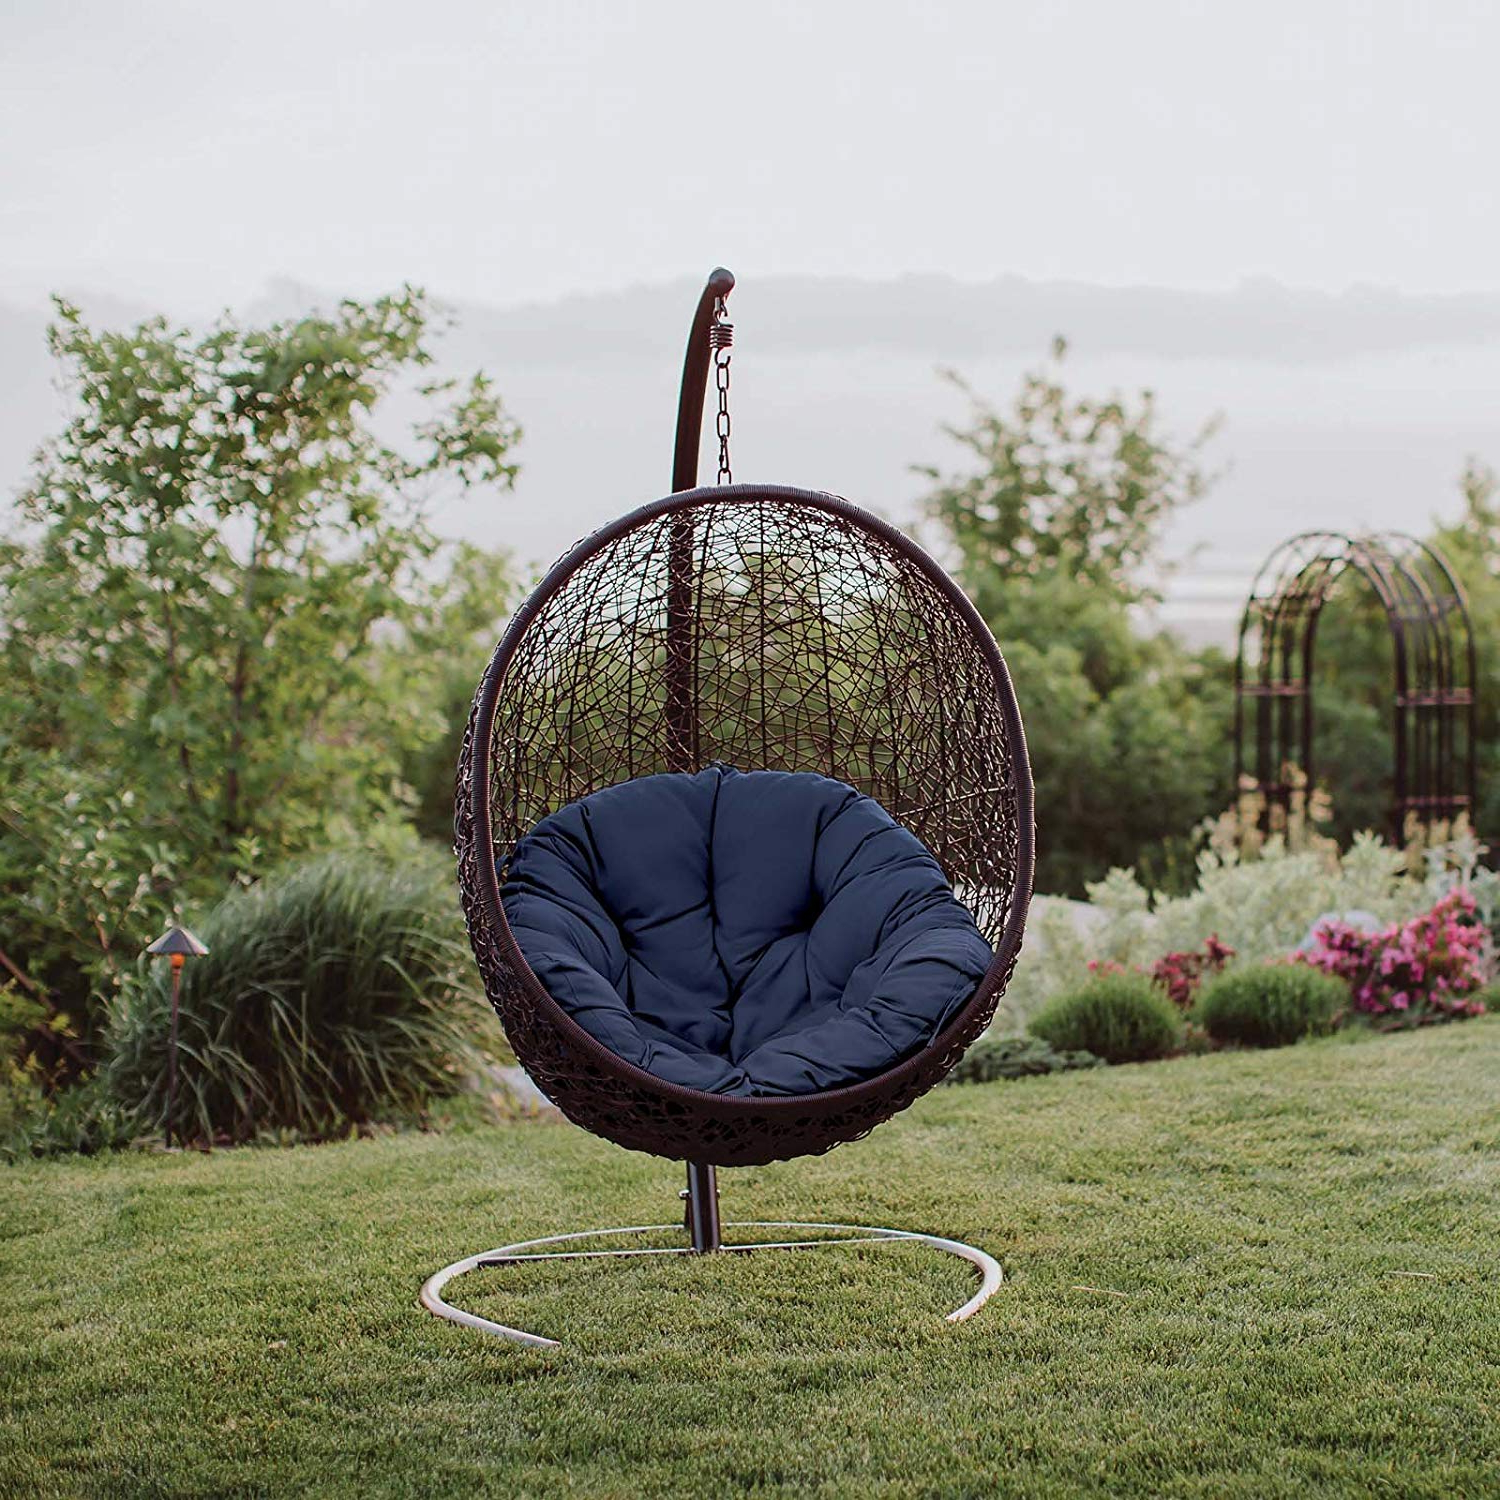 Most Up To Date Outdoor Wicker Plastic Tear Porch Swings With Stand Throughout 10 Best Egg Chairs Of 2020 (review & Guide) – Thebeastreviews (Gallery 10 of 30)